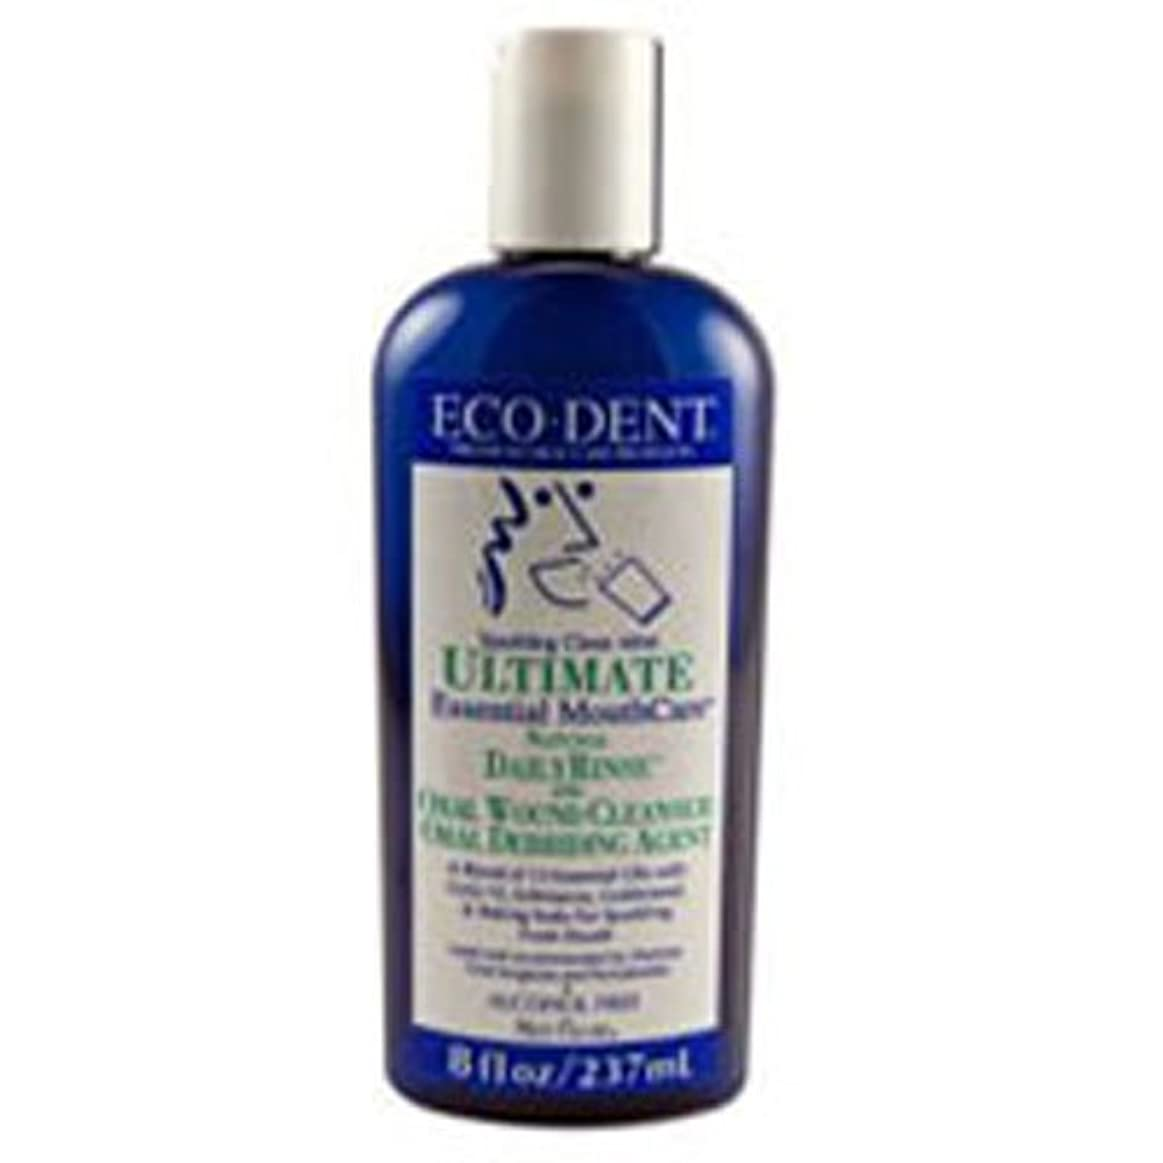 Eco-Dent International - Ultimate Natural Dailyrinse Clean Mint, 8 fl oz liquid by Eco-Dent